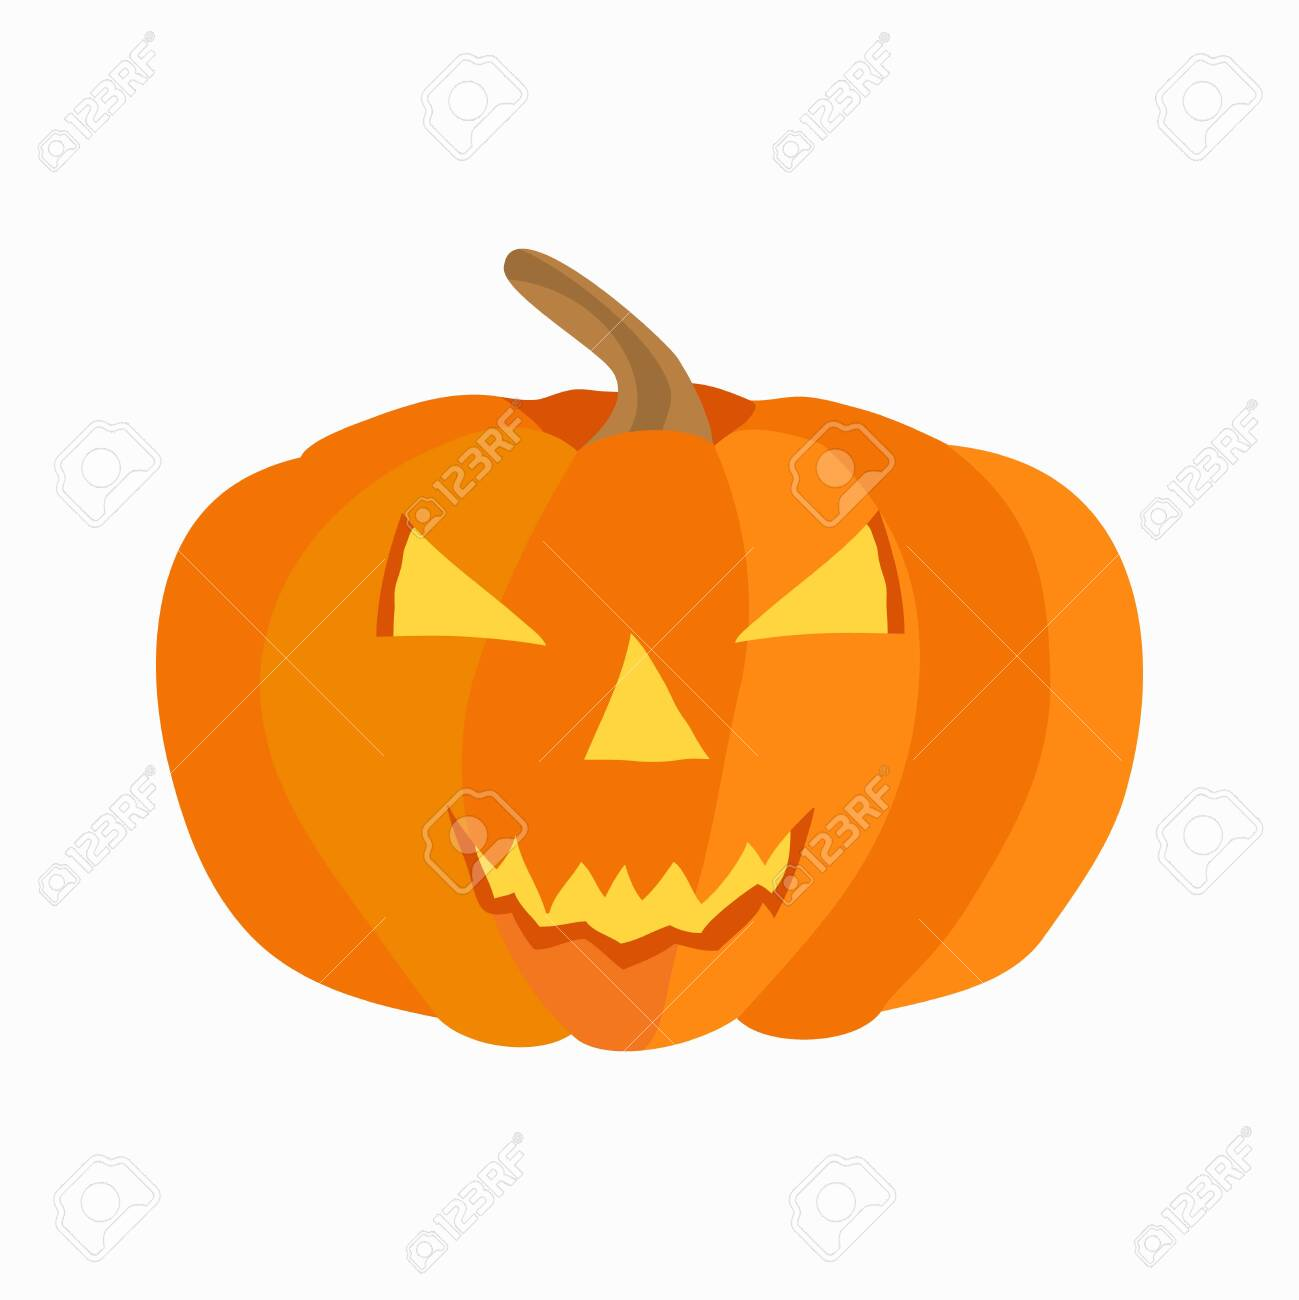 halloween icon. Flat isolated illustration for your web design. - 126591421